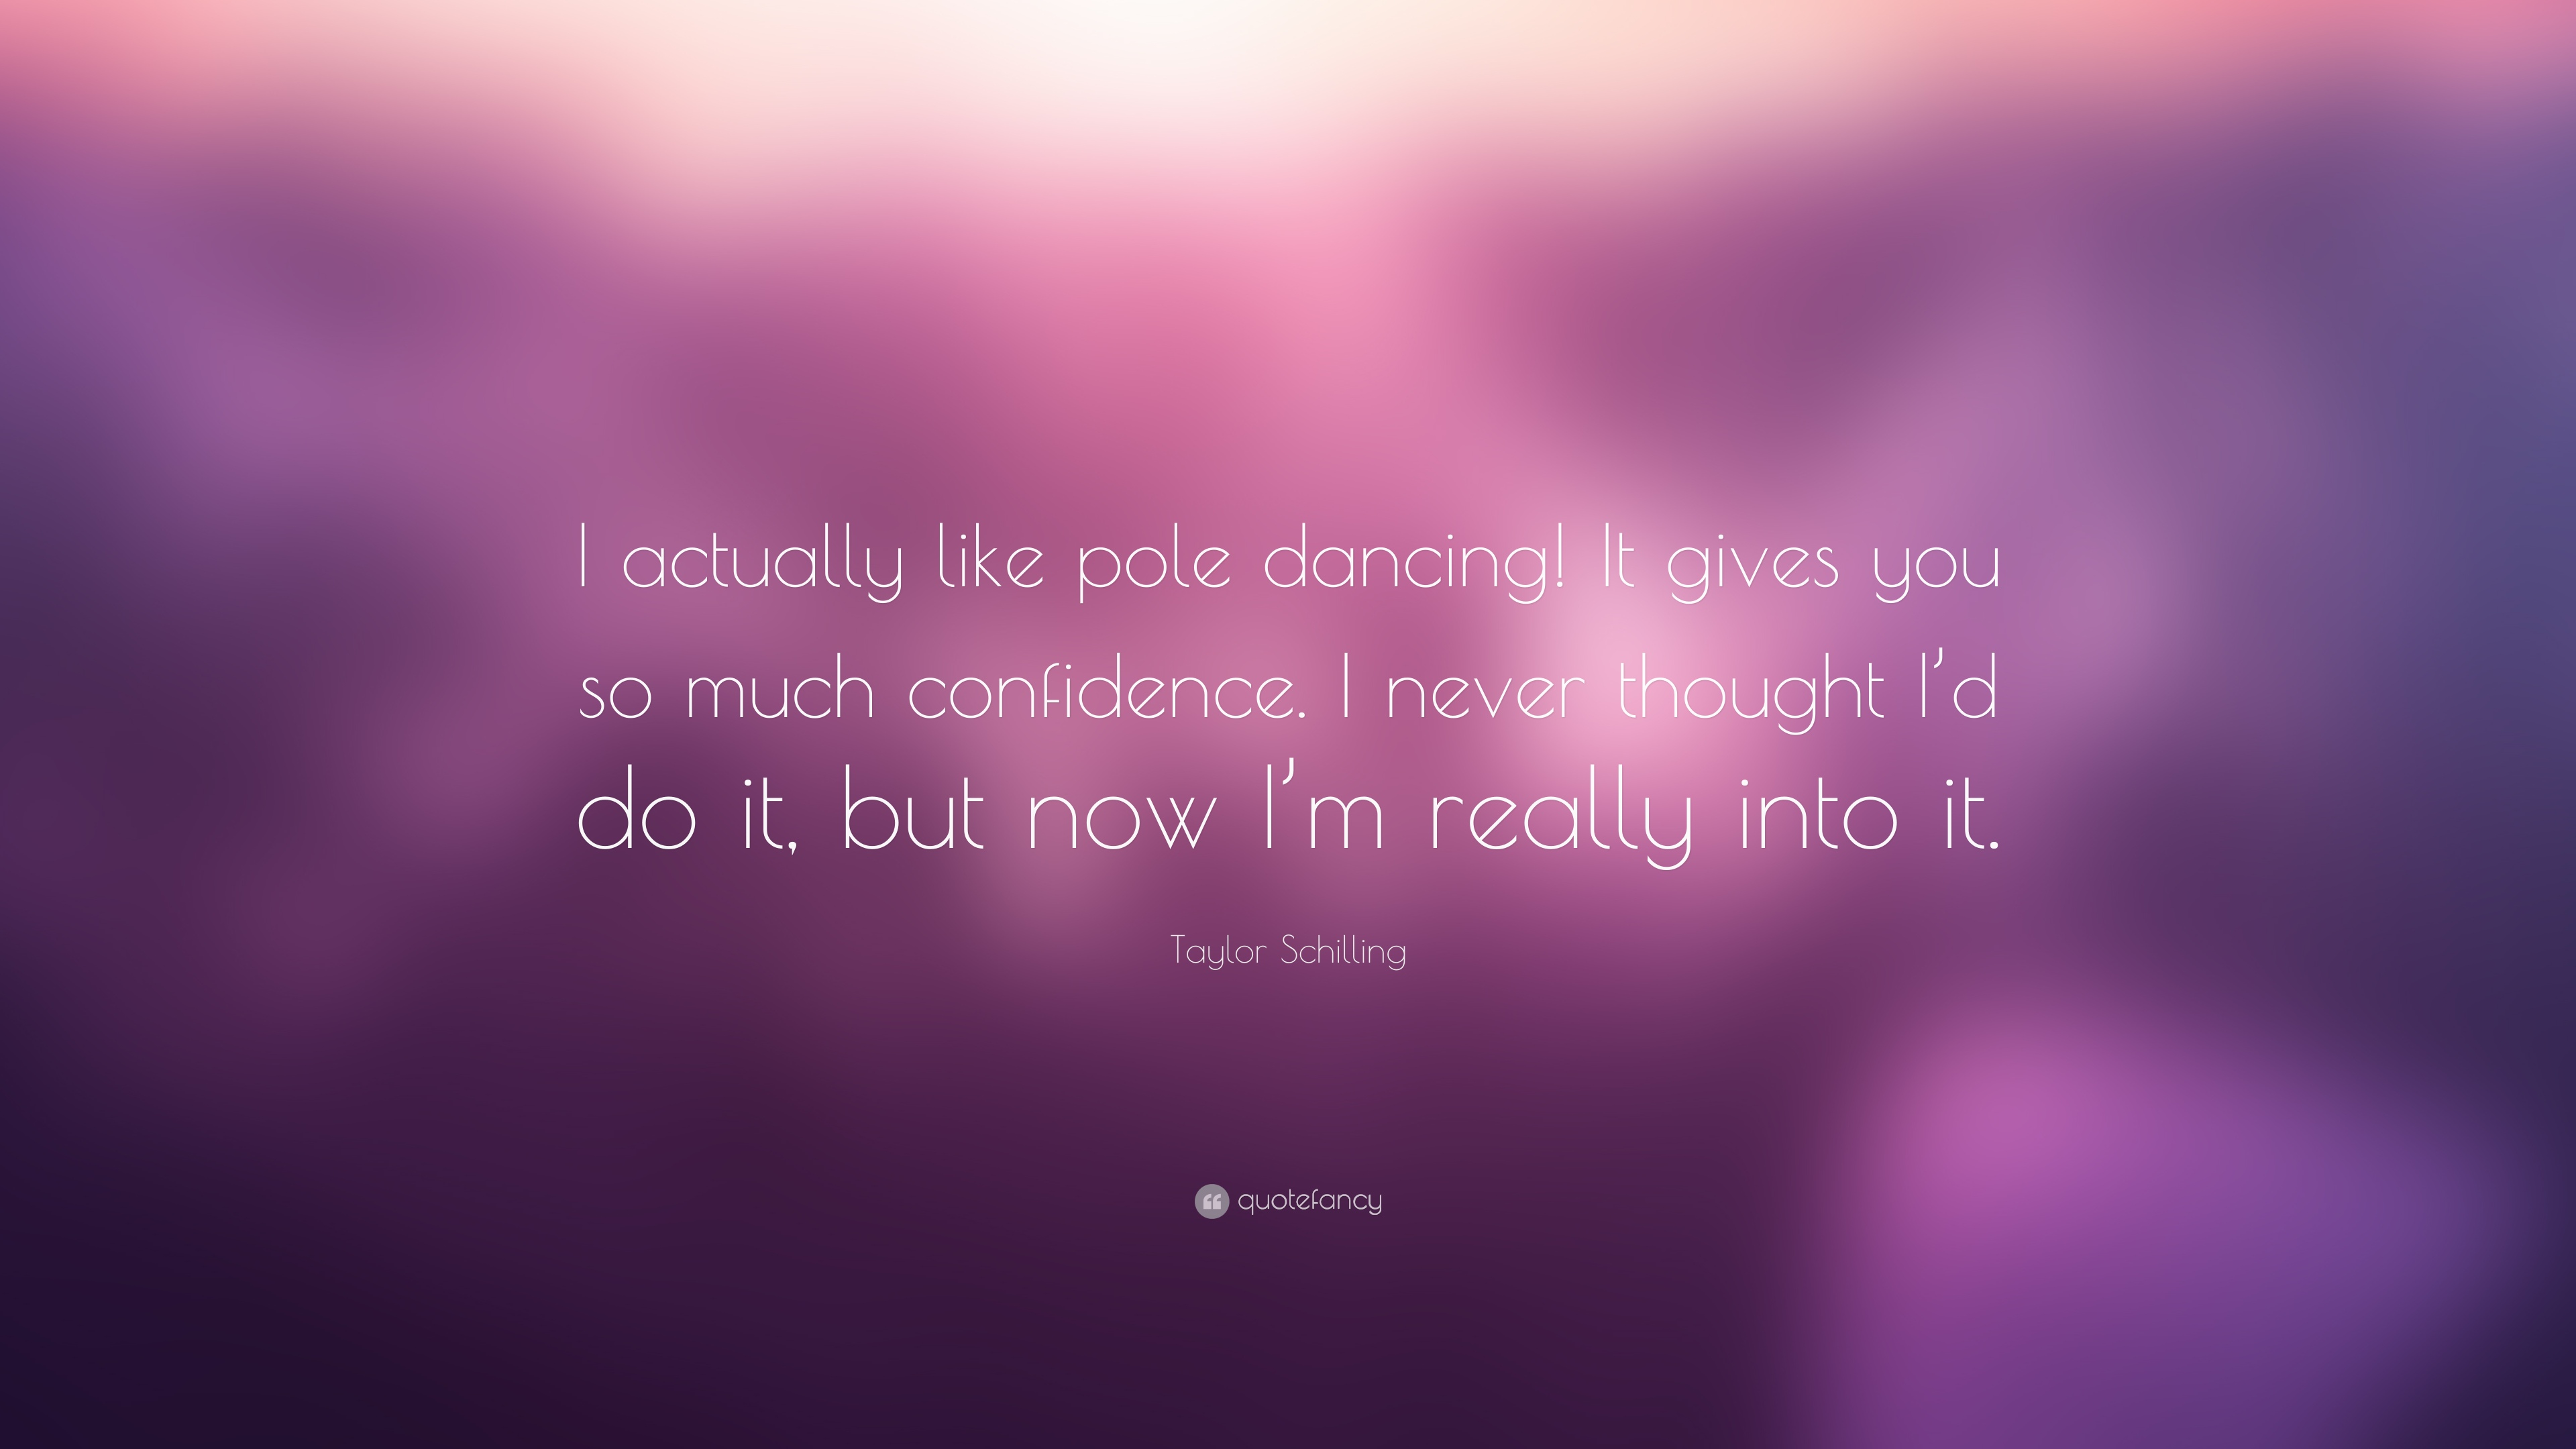 Taylor Schilling Quote I Actually Like Pole Dancing It Gives You So Much Confidence I Never Thought I D Do It But Now I M Really Into It 7 Wallpapers Quotefancy